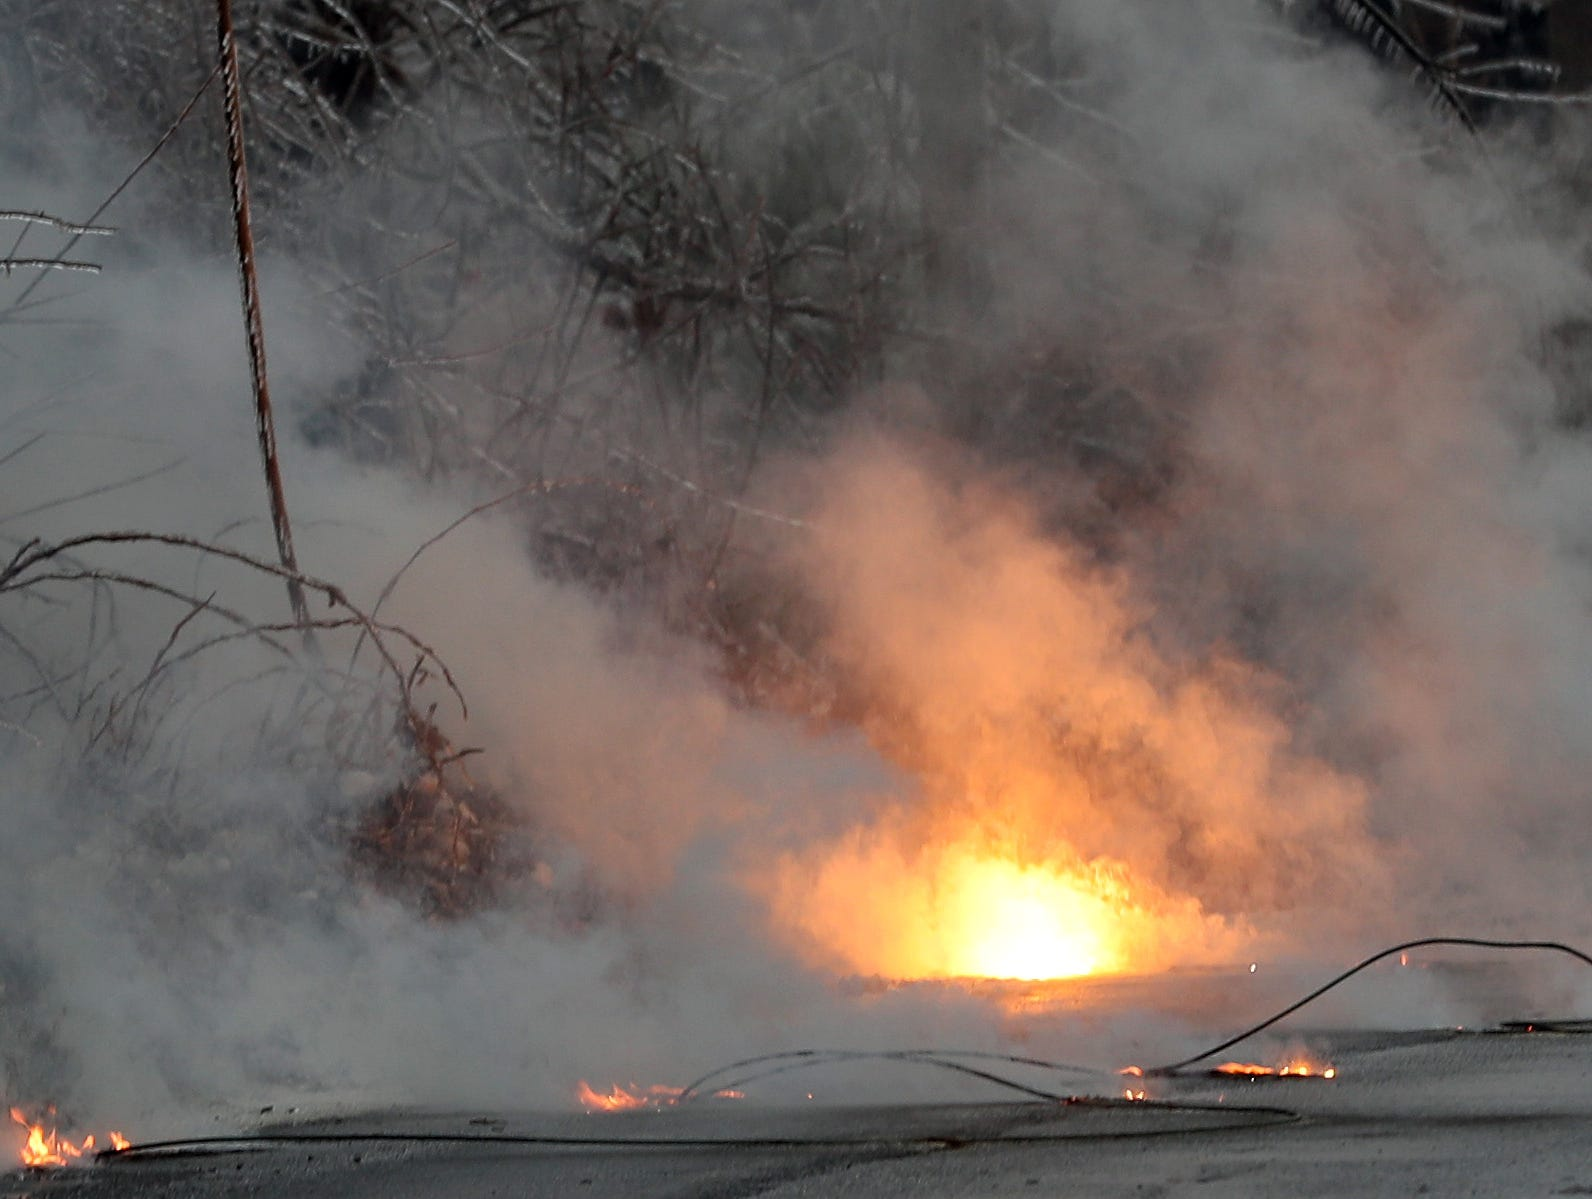 Burning power lines on the side of Route 121 in North Salem Jan. 20, 2019. A large tree branch came down taking the power lines with it.